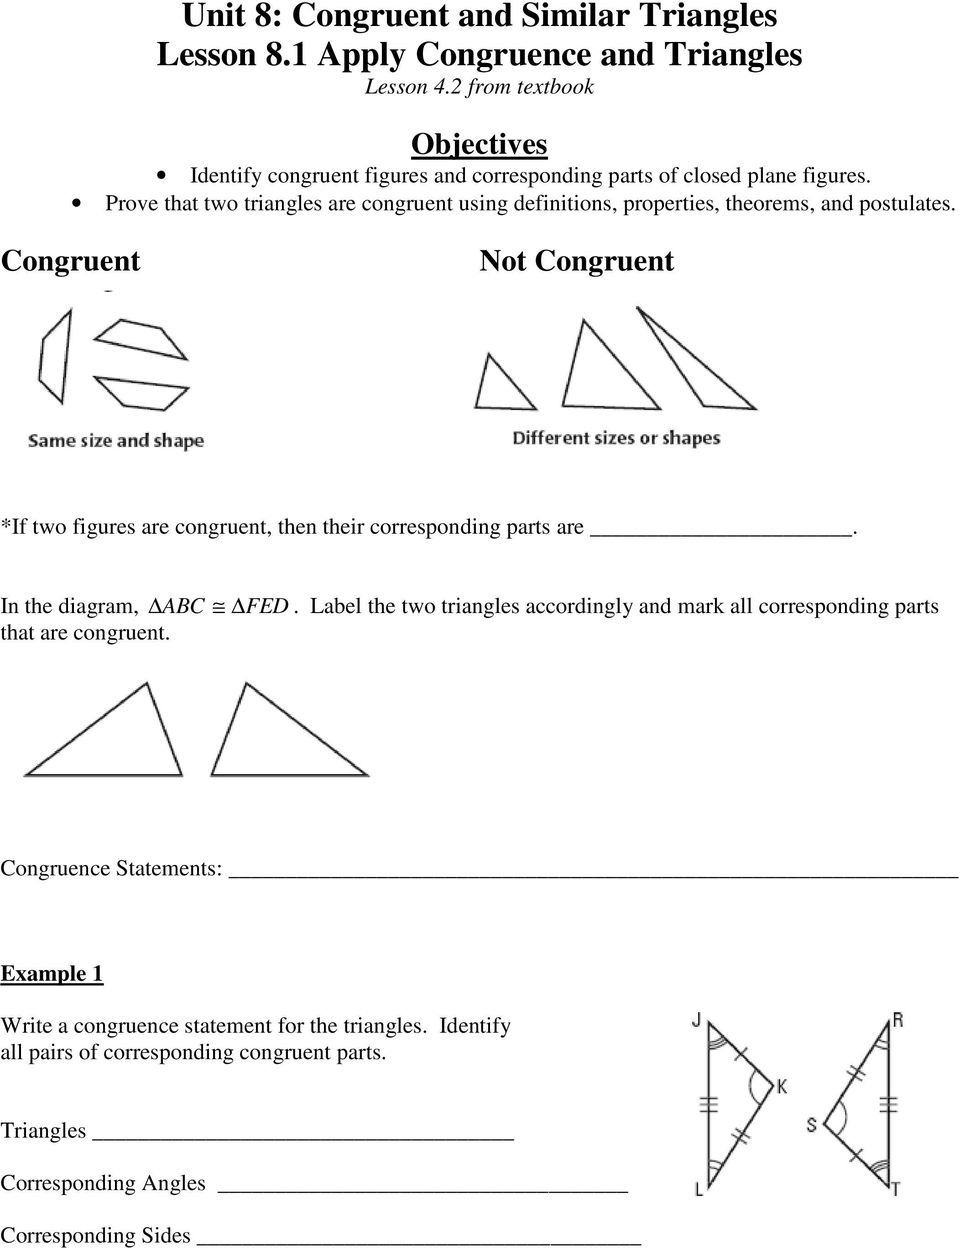 Prove that two triangles are congruent using definitions, properties, theorems, and postulates.